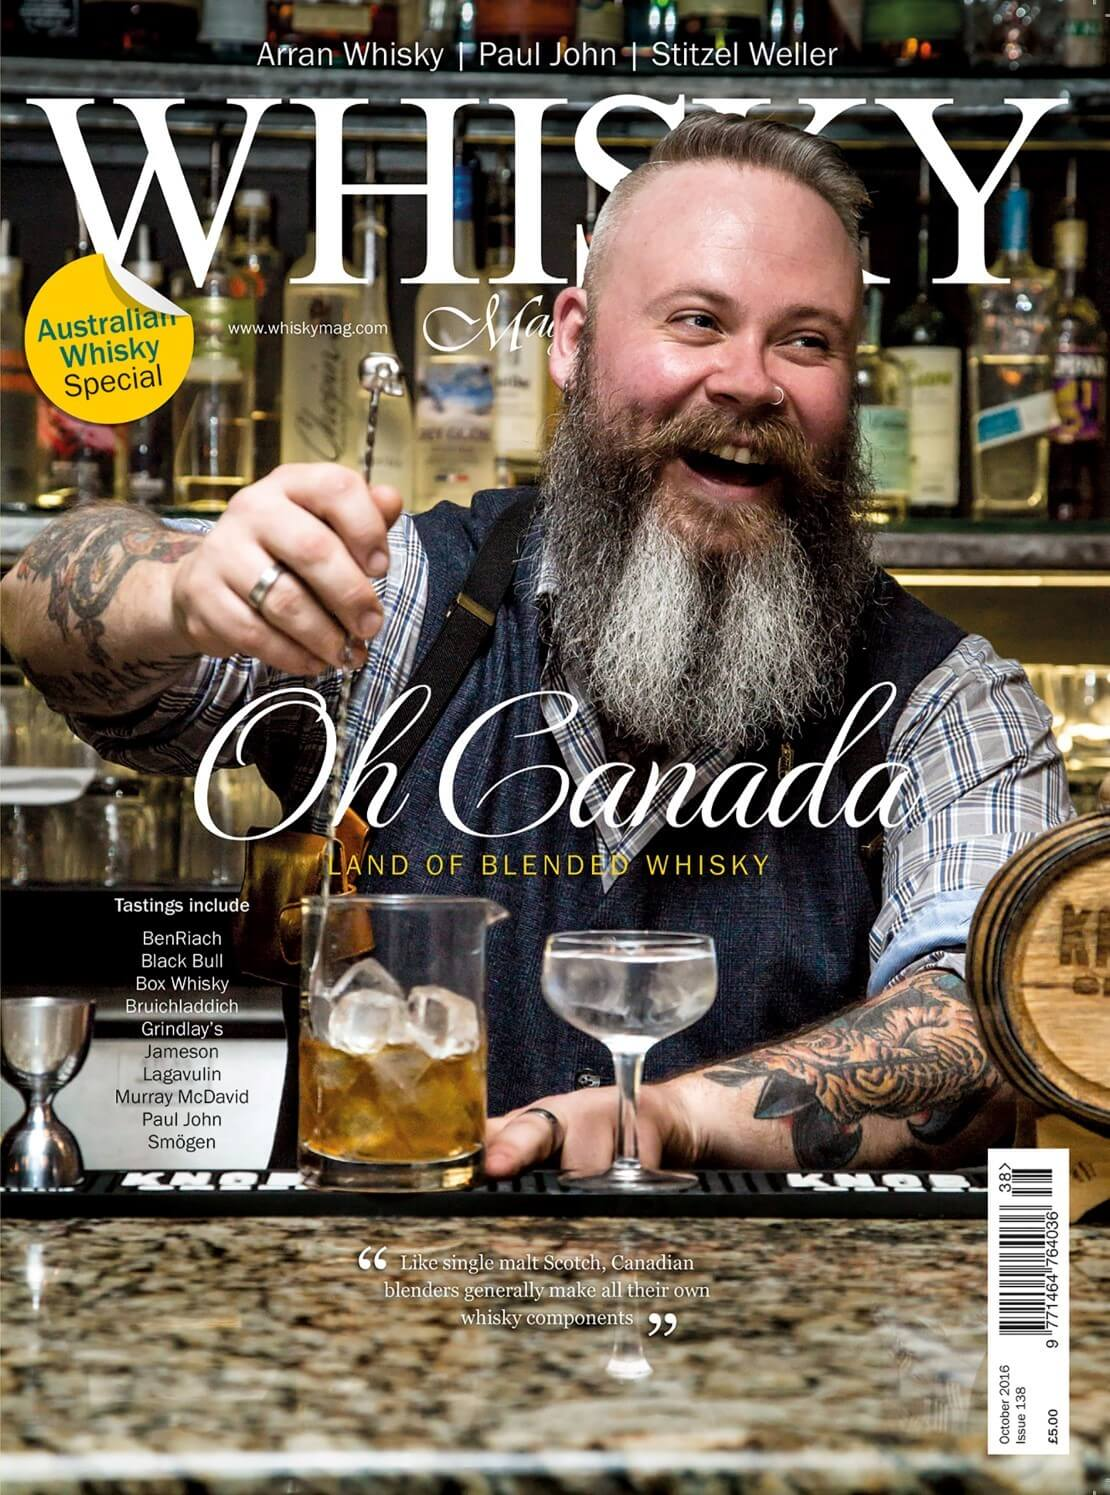 Canadian whisky and blends Arran Paul John Distillery Focus Australian whisky supplement